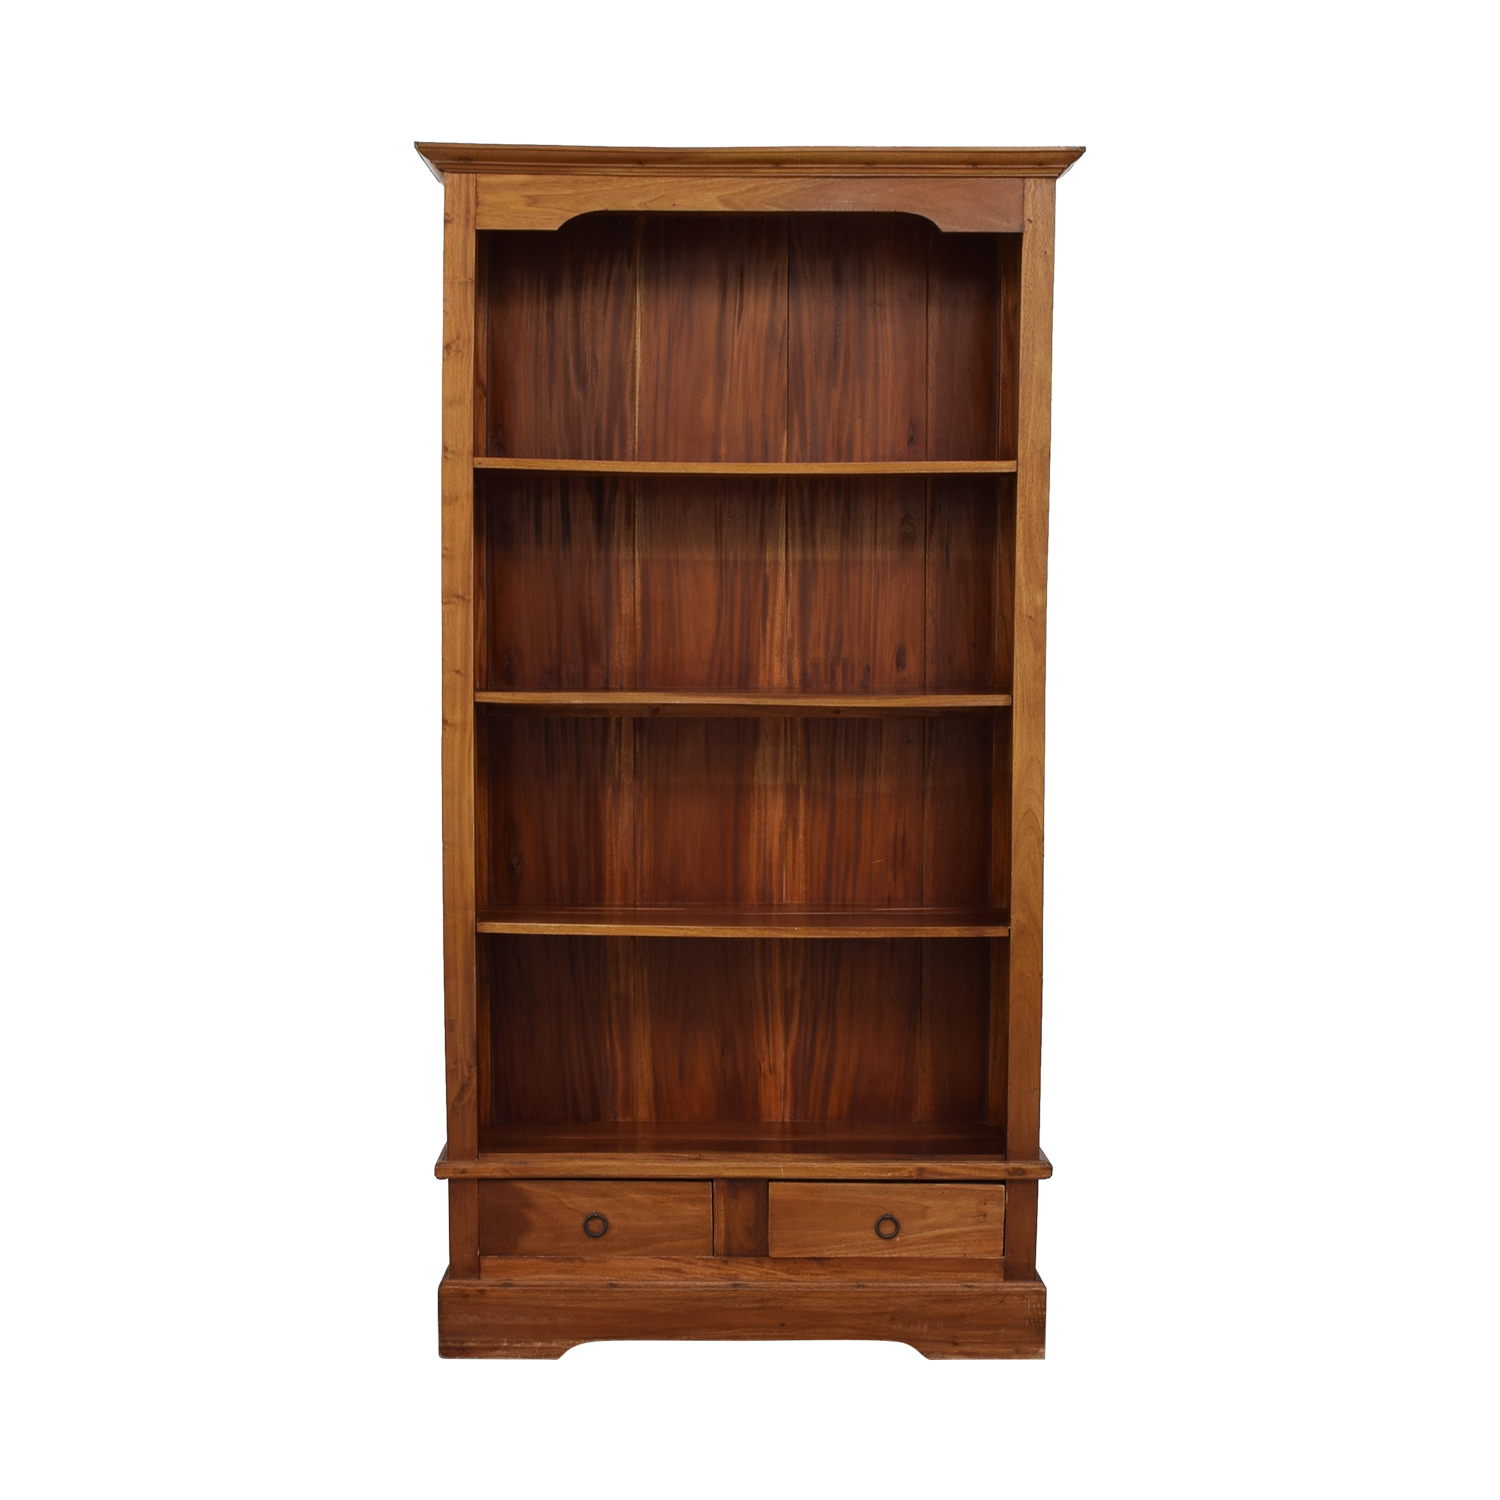 Tall Wood Bookcase with Two Drawers / Storage